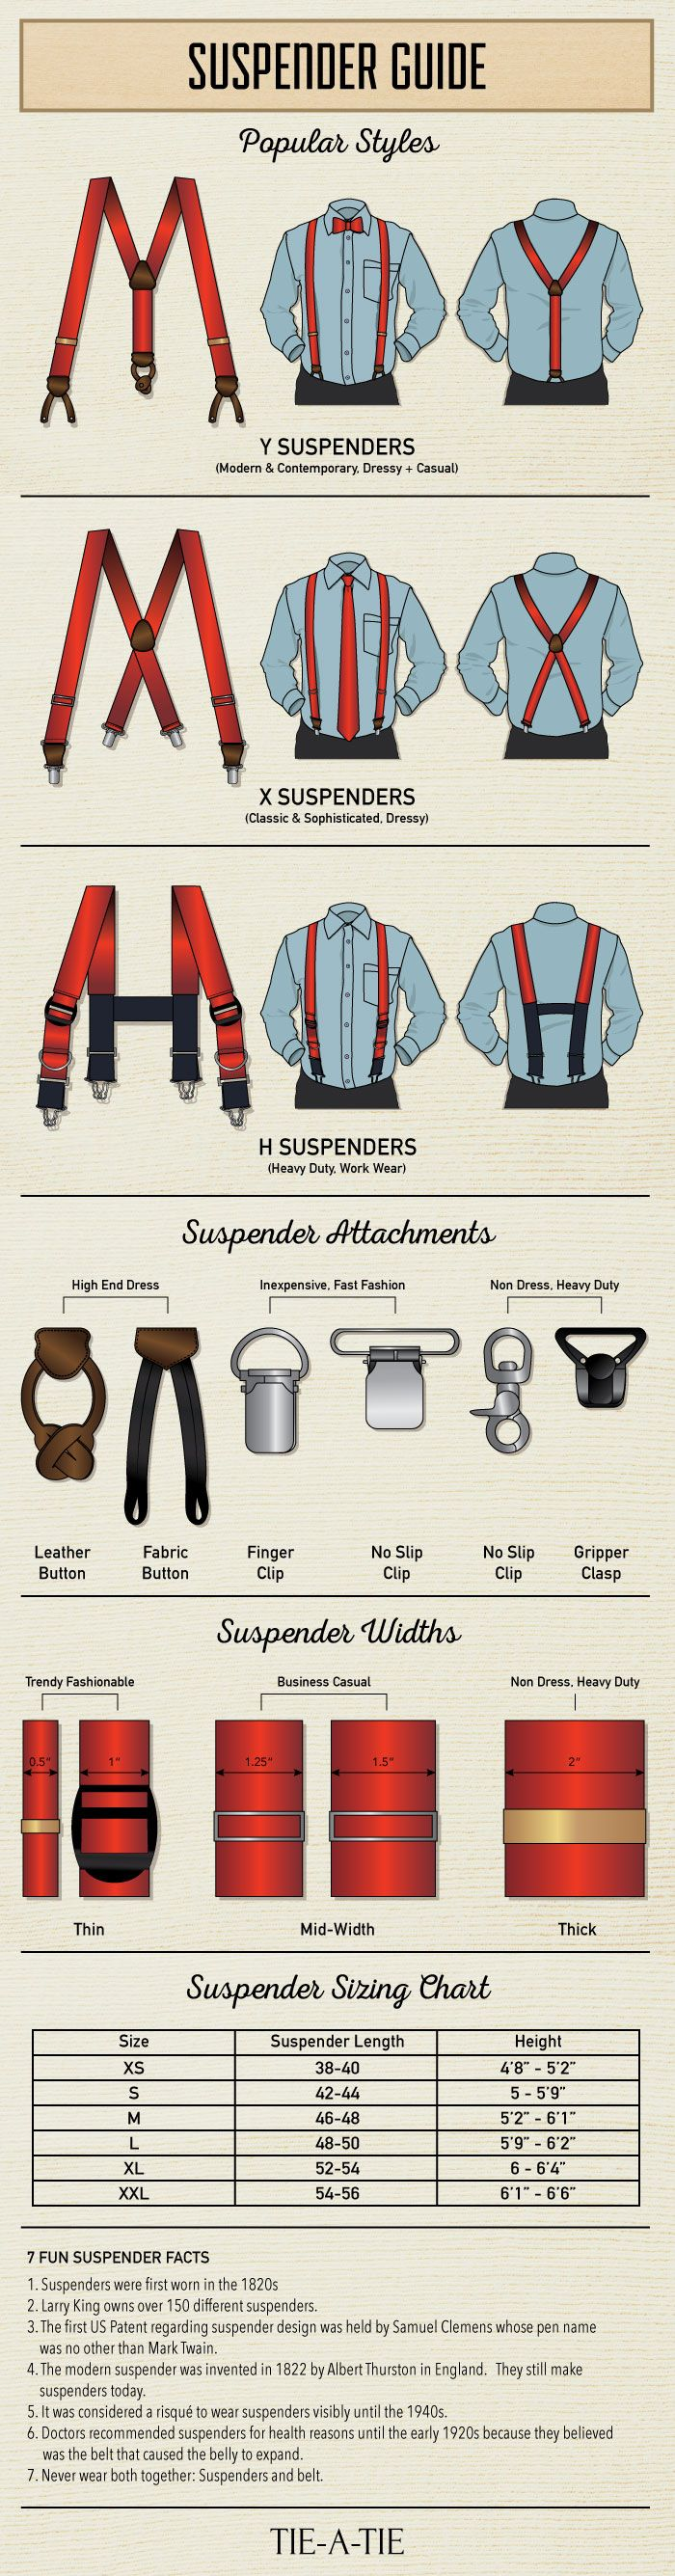 Suspenders 101: A Complete Guide to Men's Suspenders